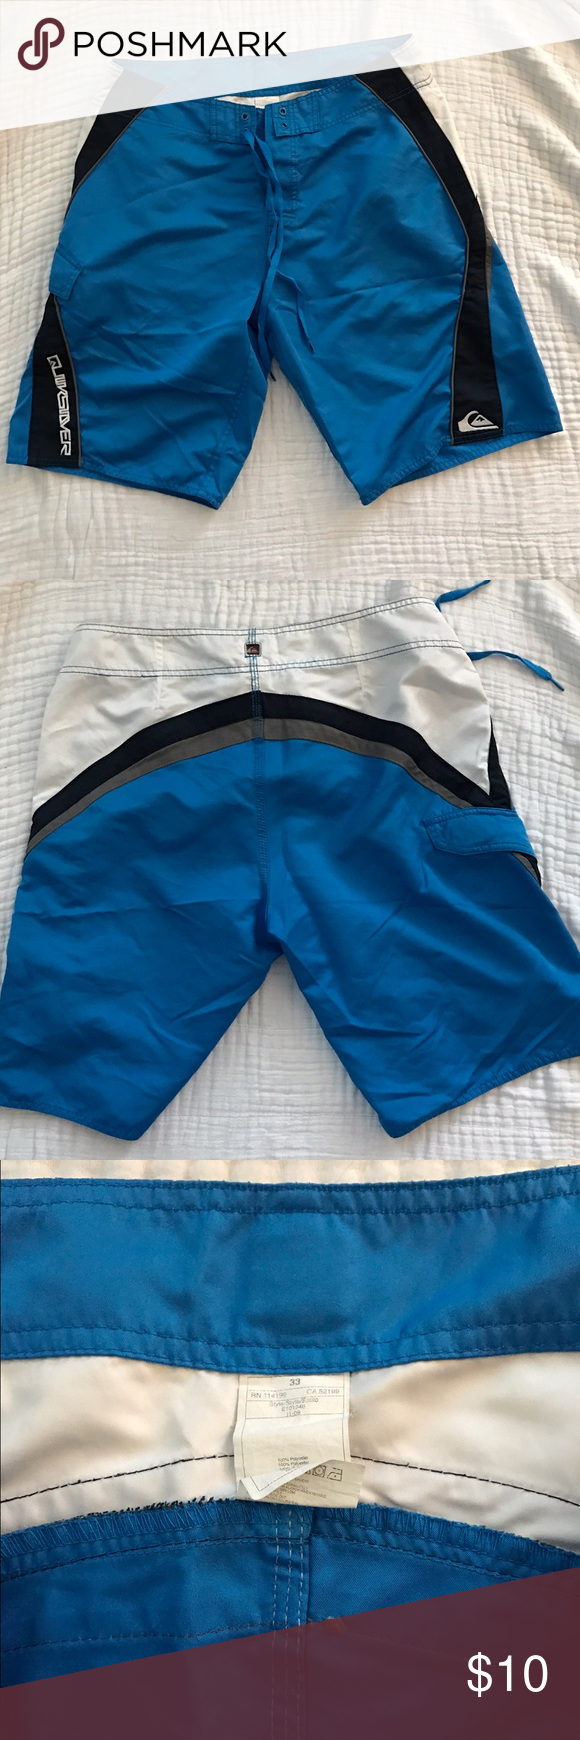 Quiksilver Swim Suit Blue and white board shorts. Size 33. In excellent condition. 20.5 inches long with 11 inch inseam. Quiksilver Swim